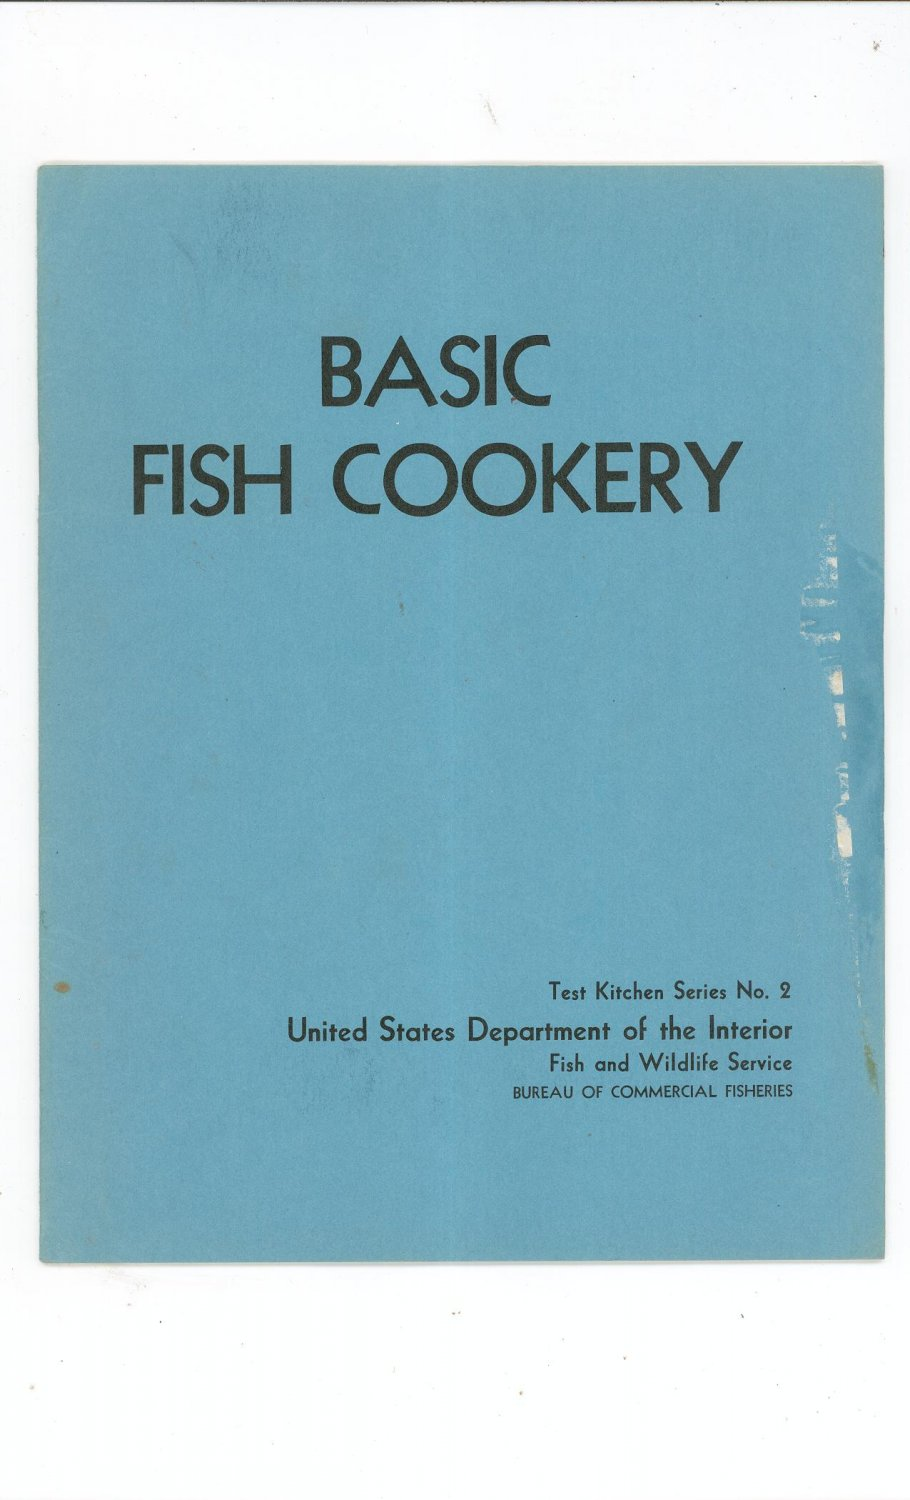 Basic Fish Cookery Cookbook & Guide By US Department Interior Series Number 2 1964 Vintage